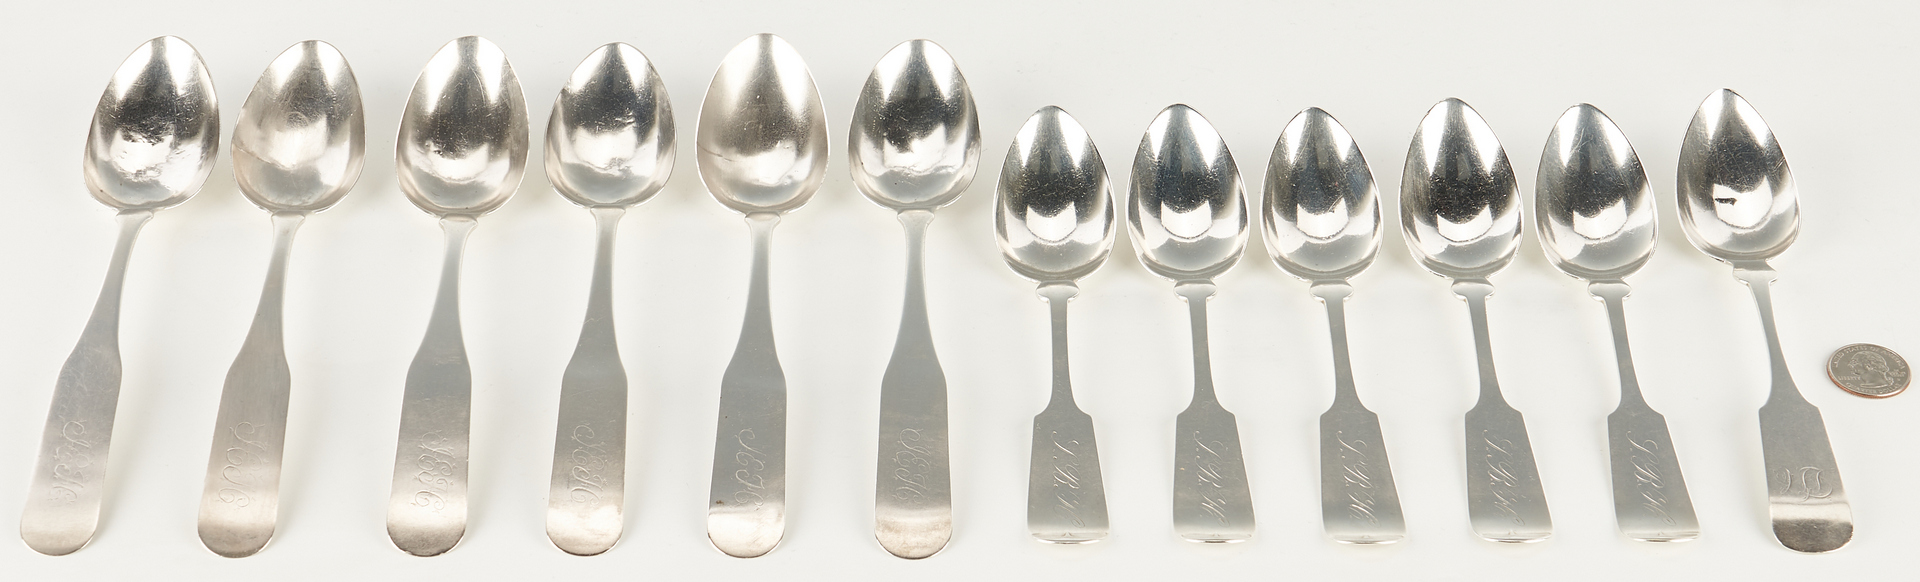 Lot 319: 12 Coin and Sterling Silver Spoons inc. Nashville, Negrin